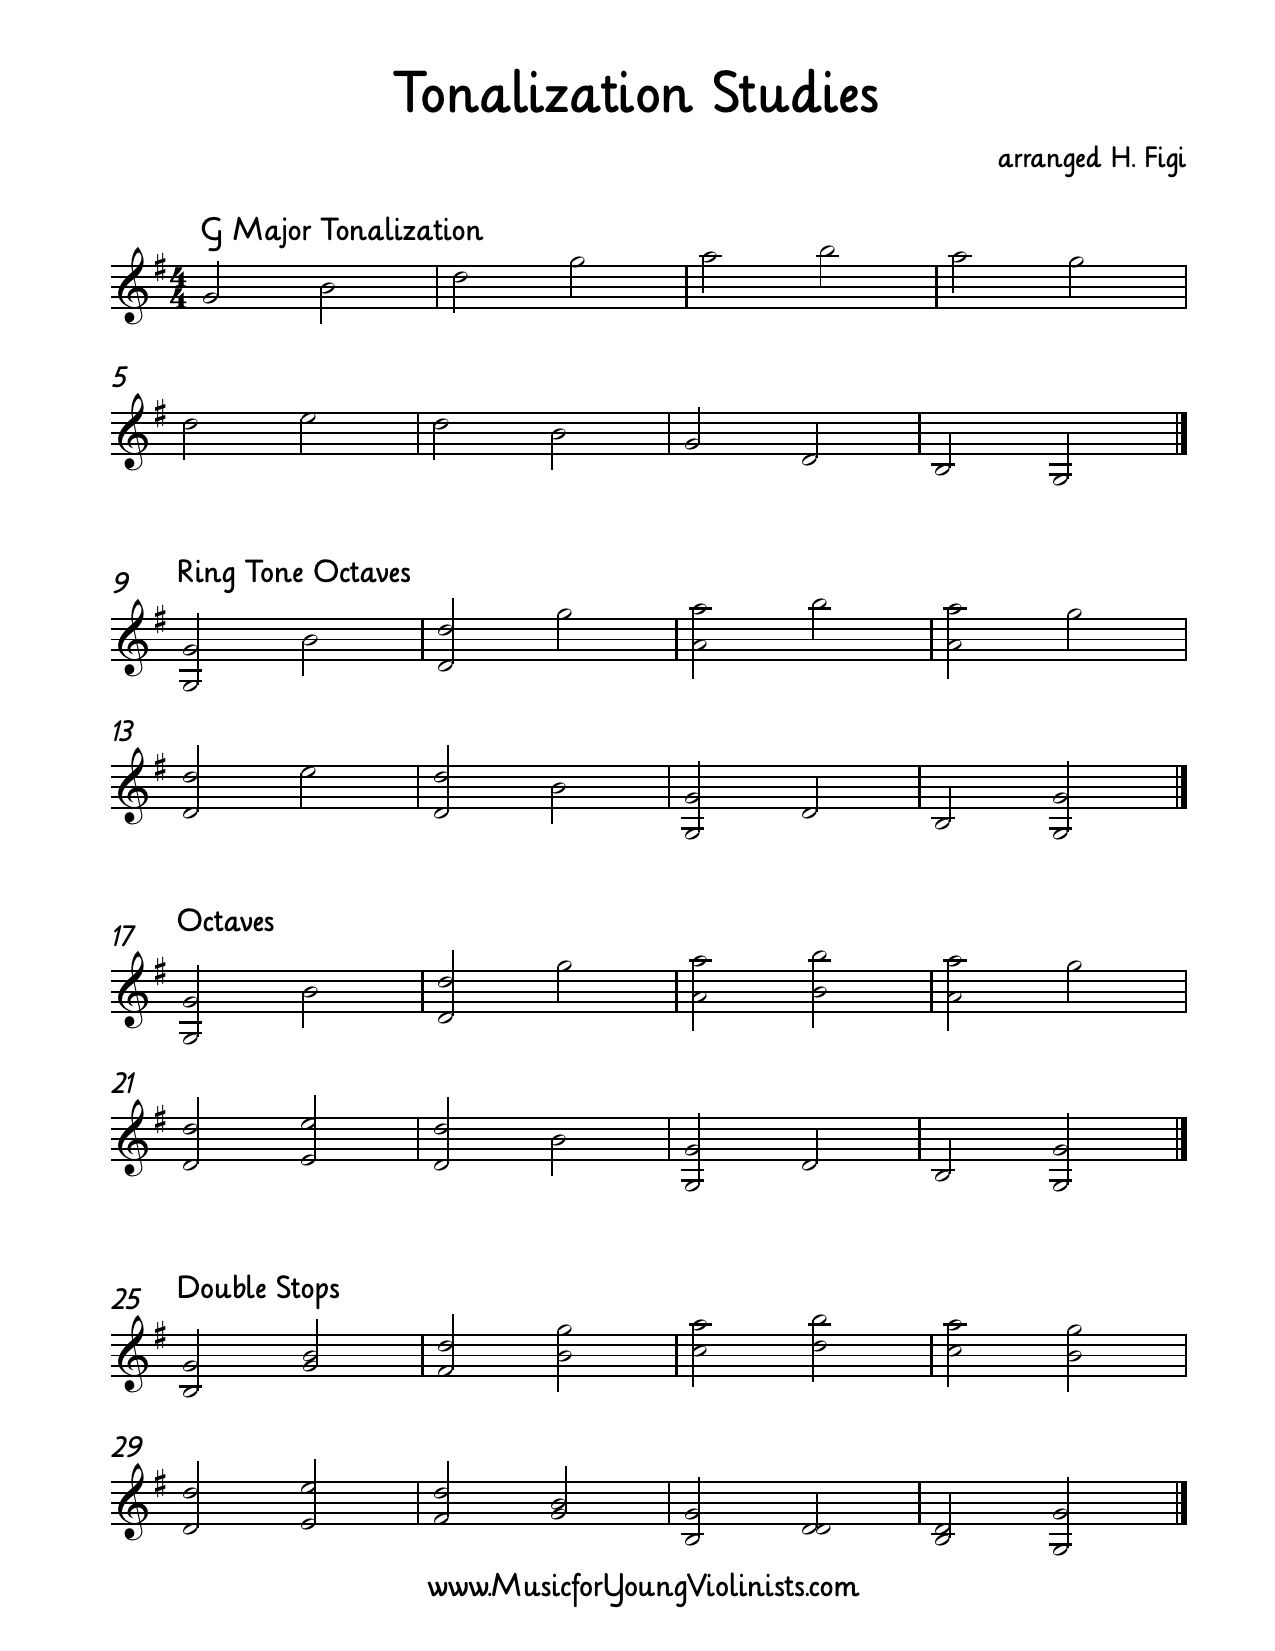 Violin Music Tonalization Studies Arranged In A 4 Part Progression Adding In Doublestops This Progression Will Violin Sheet Music Violin Lessons Violin Music